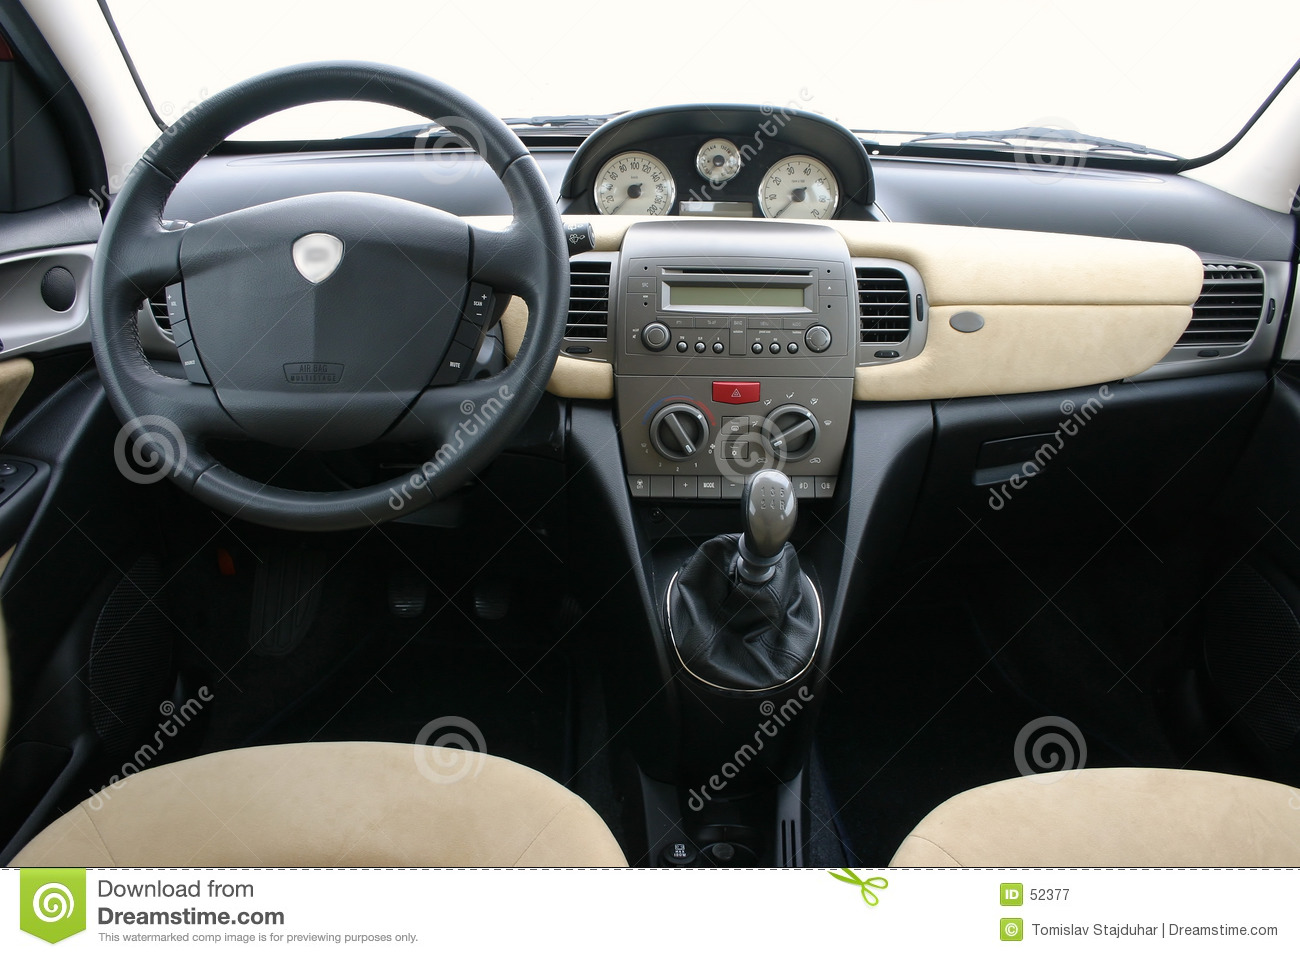 Lancia Y (ypsilon) Interior Stock Image - Image of quick, design: 52377